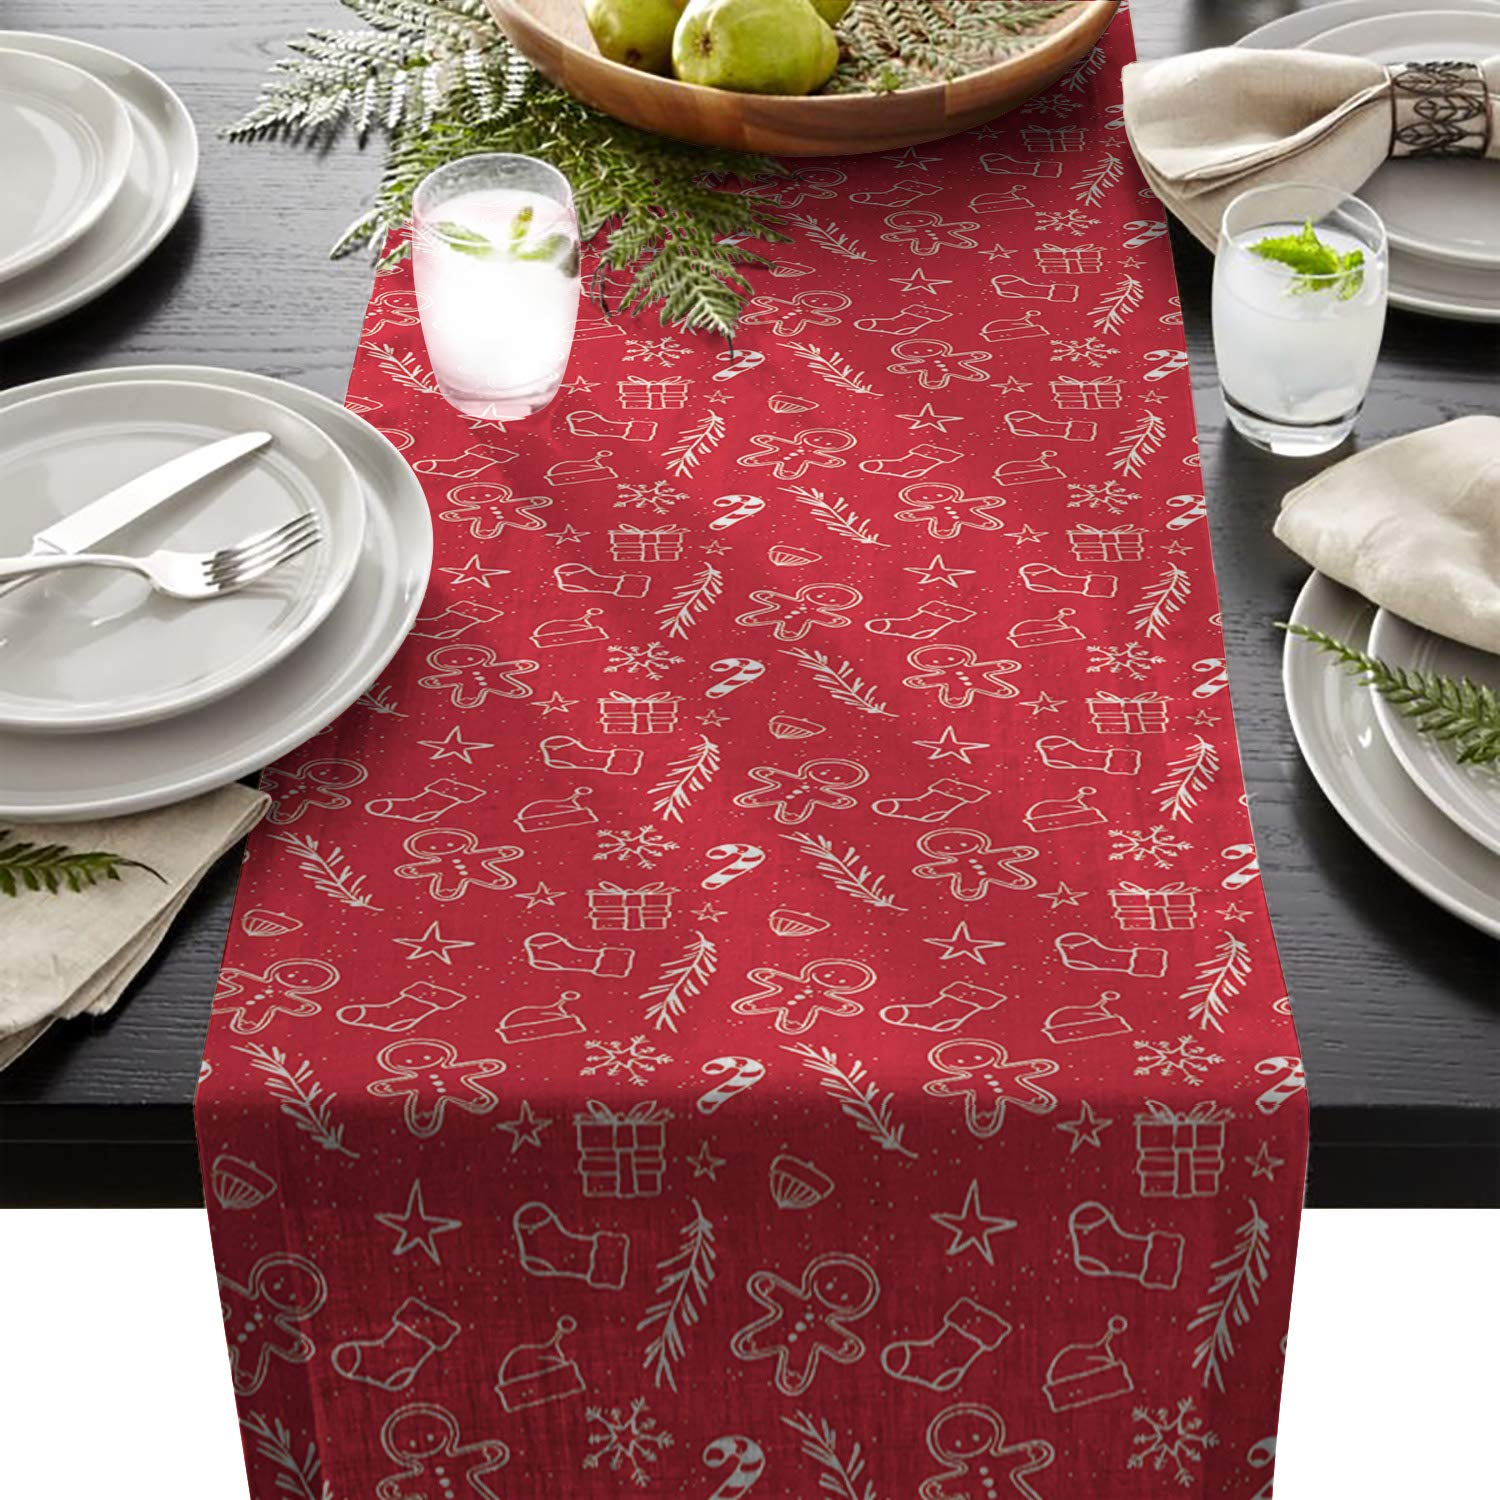 Artshowing Winter Theme Table Runner Party Supplies Fabric Decorations For Wedding Birthday Baby Shower 18x72inch Gingerbread Man Festive Christmas